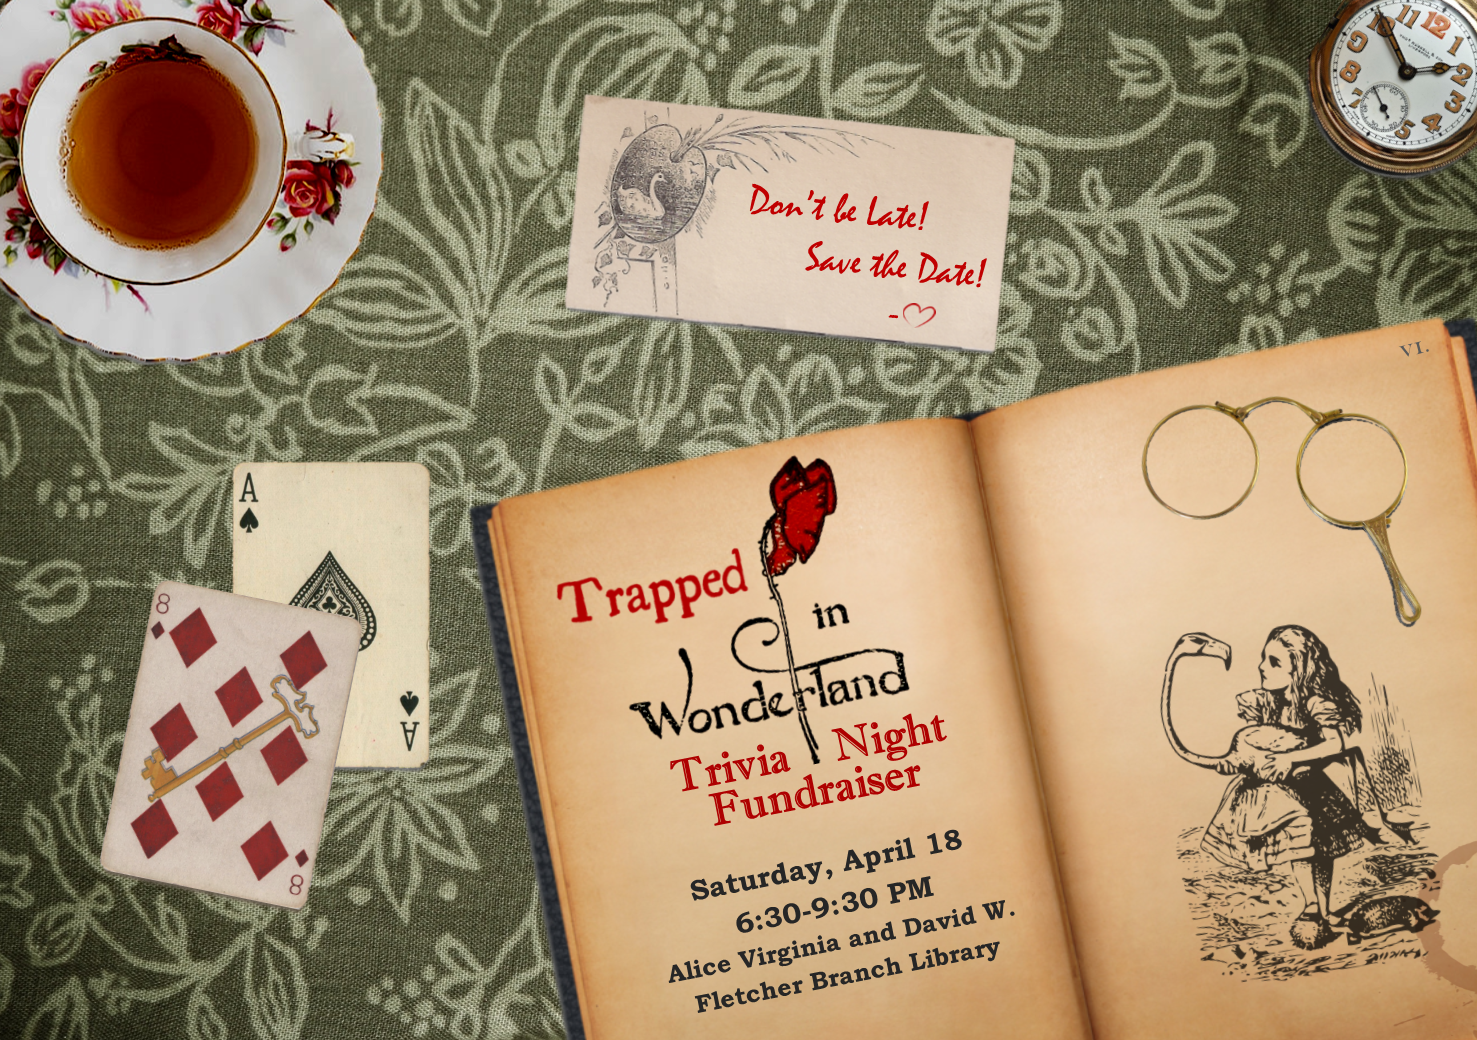 Image of tabletop with open books and other Alice in Wonderland-related items